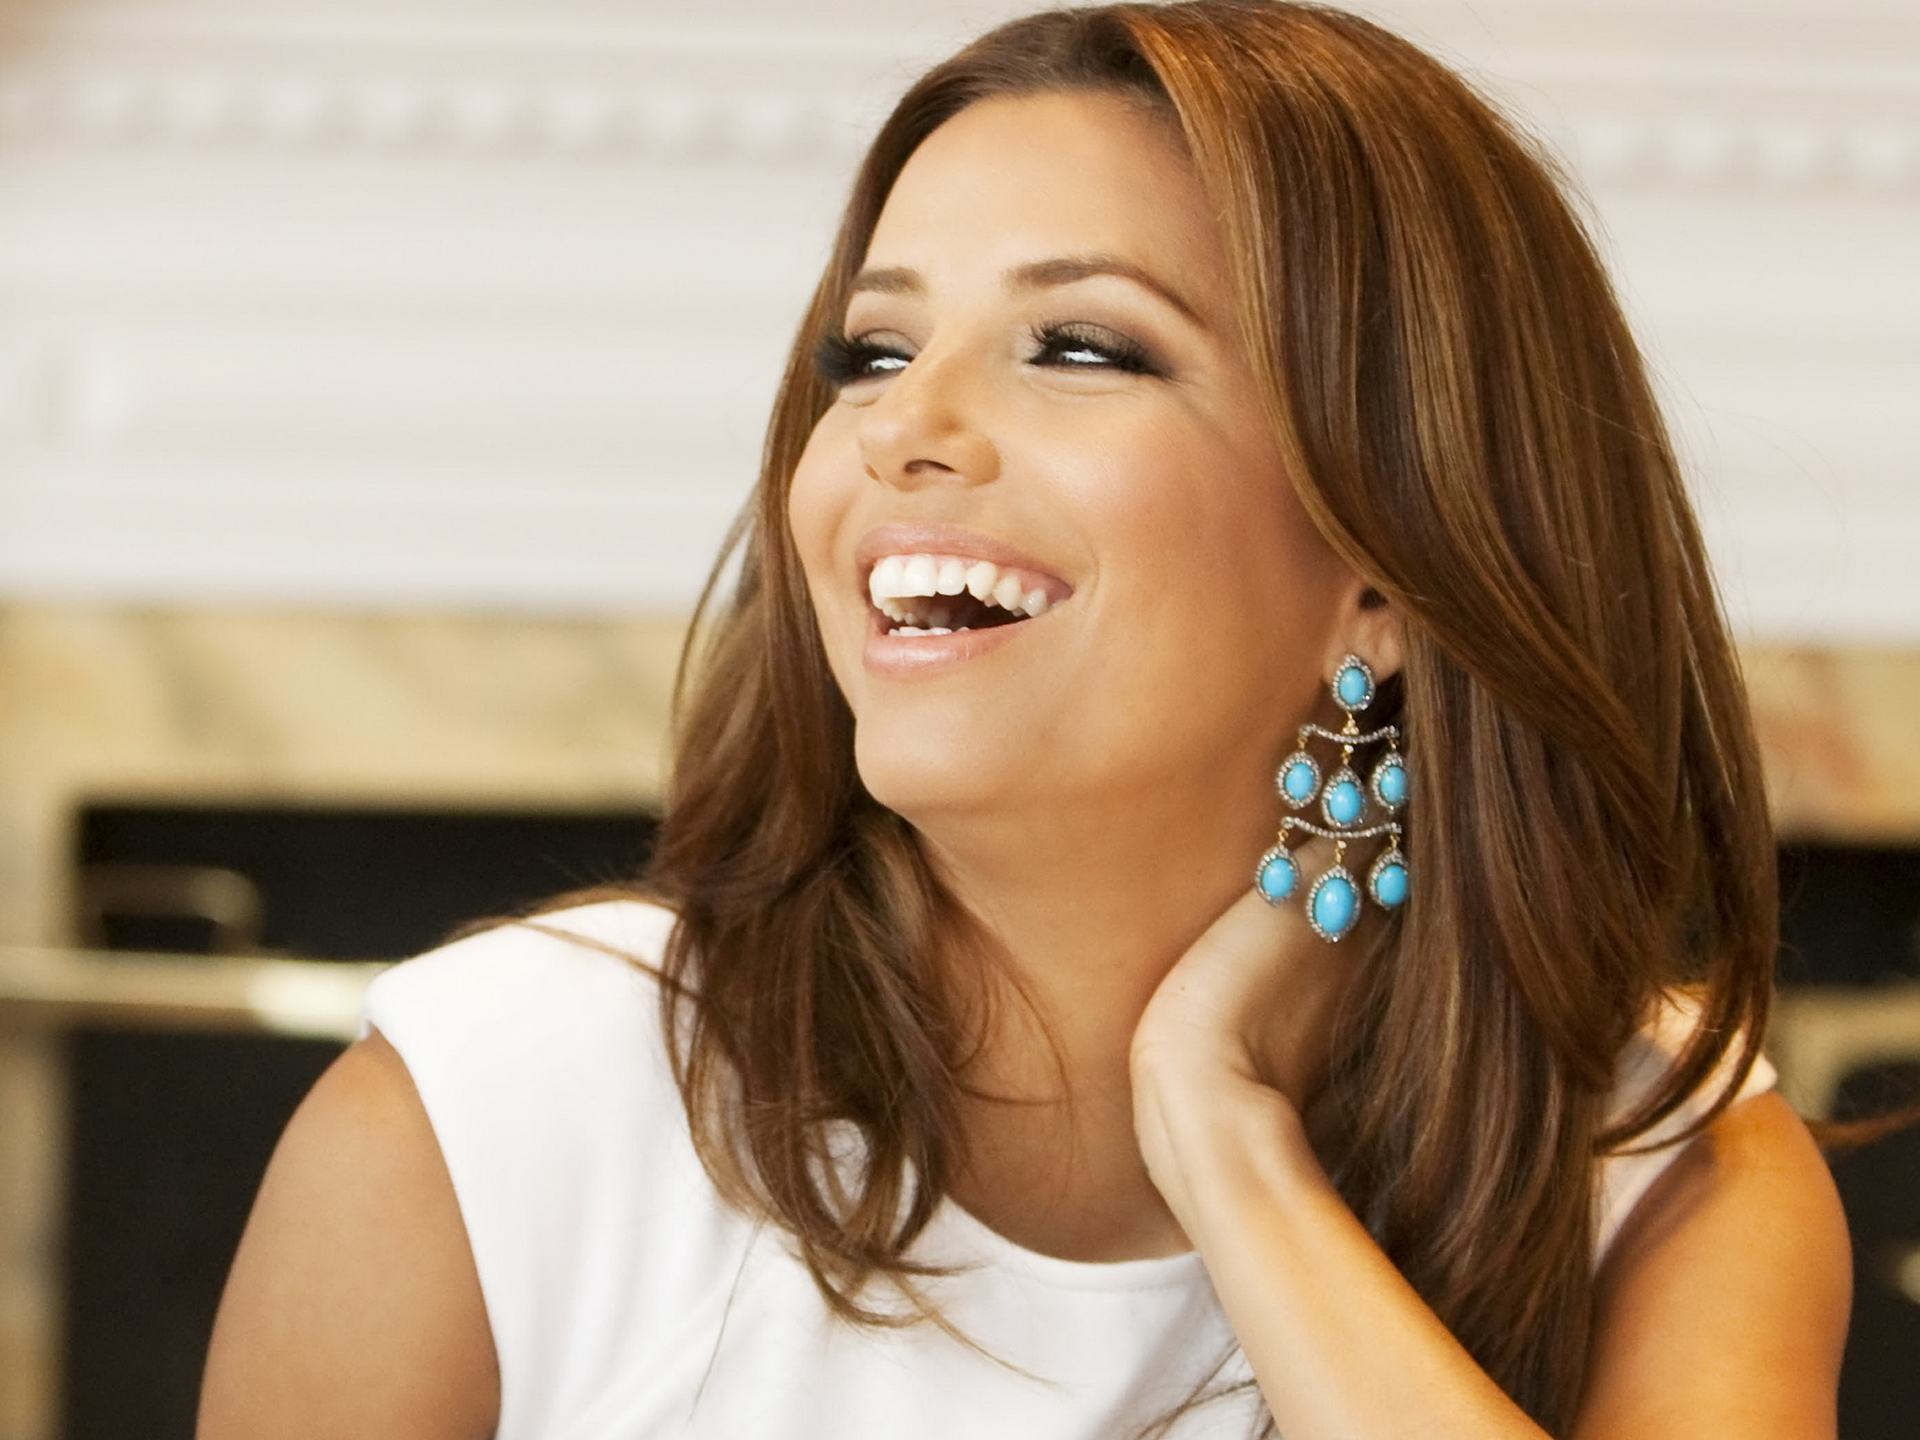 Amazing Eva Longoria Cute Laughing Face Look Mobile Desktop Free Background Hd Pictures